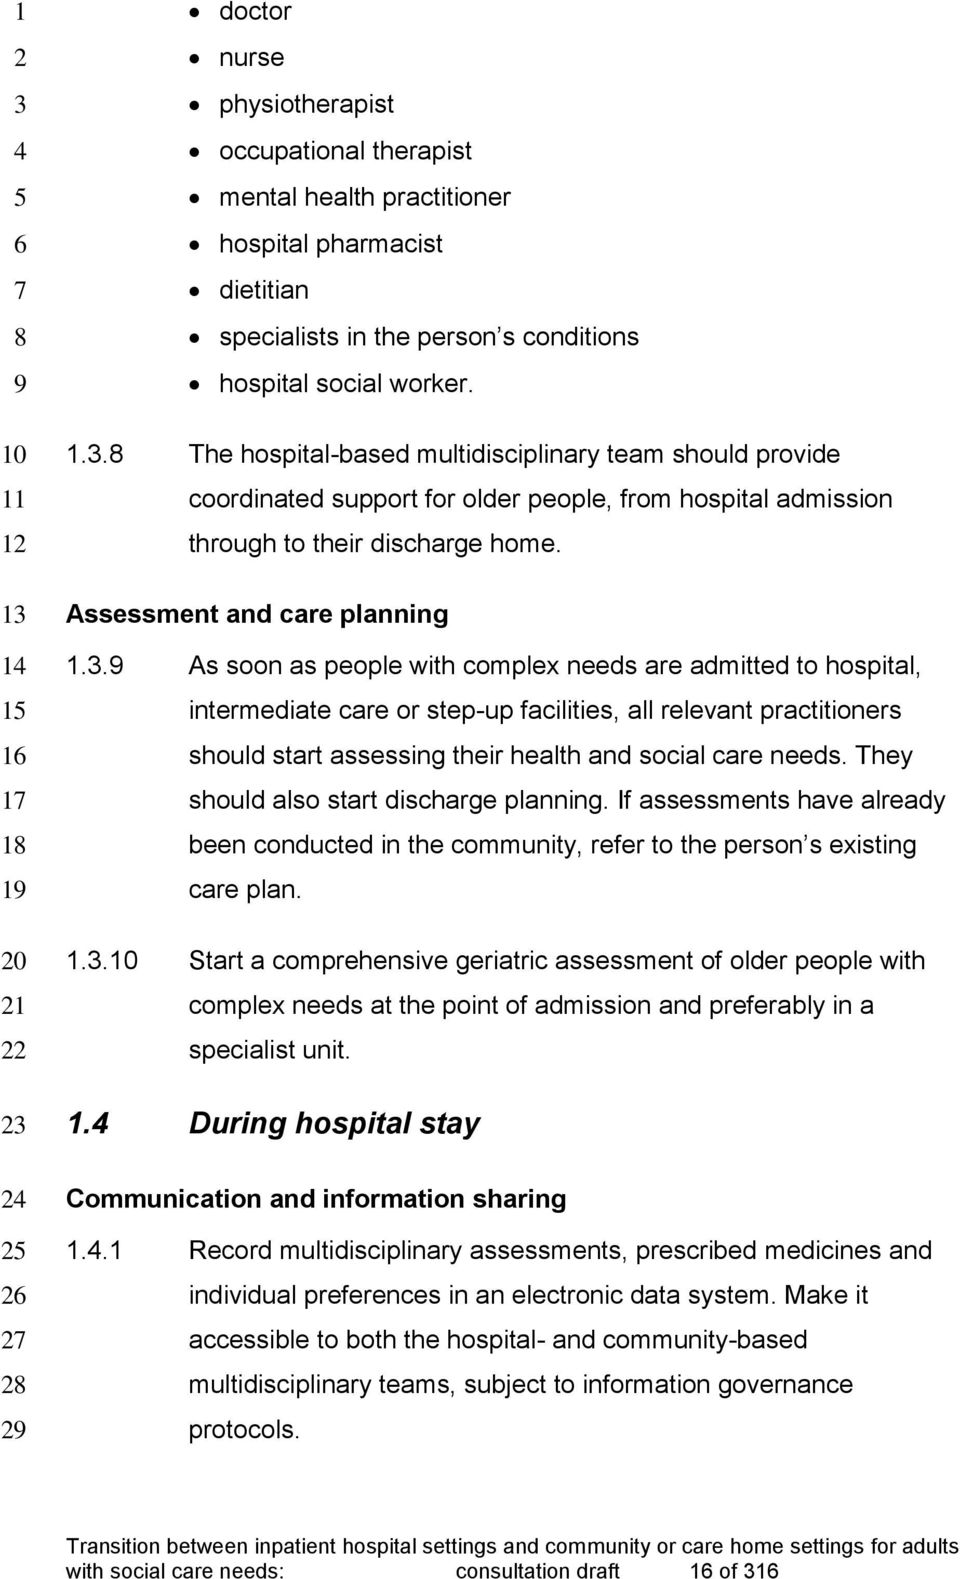 . As soon as people with complex needs are admitted to hospital, intermediate care or step-up facilities, all relevant practitioners should start assessing their health and social care needs.